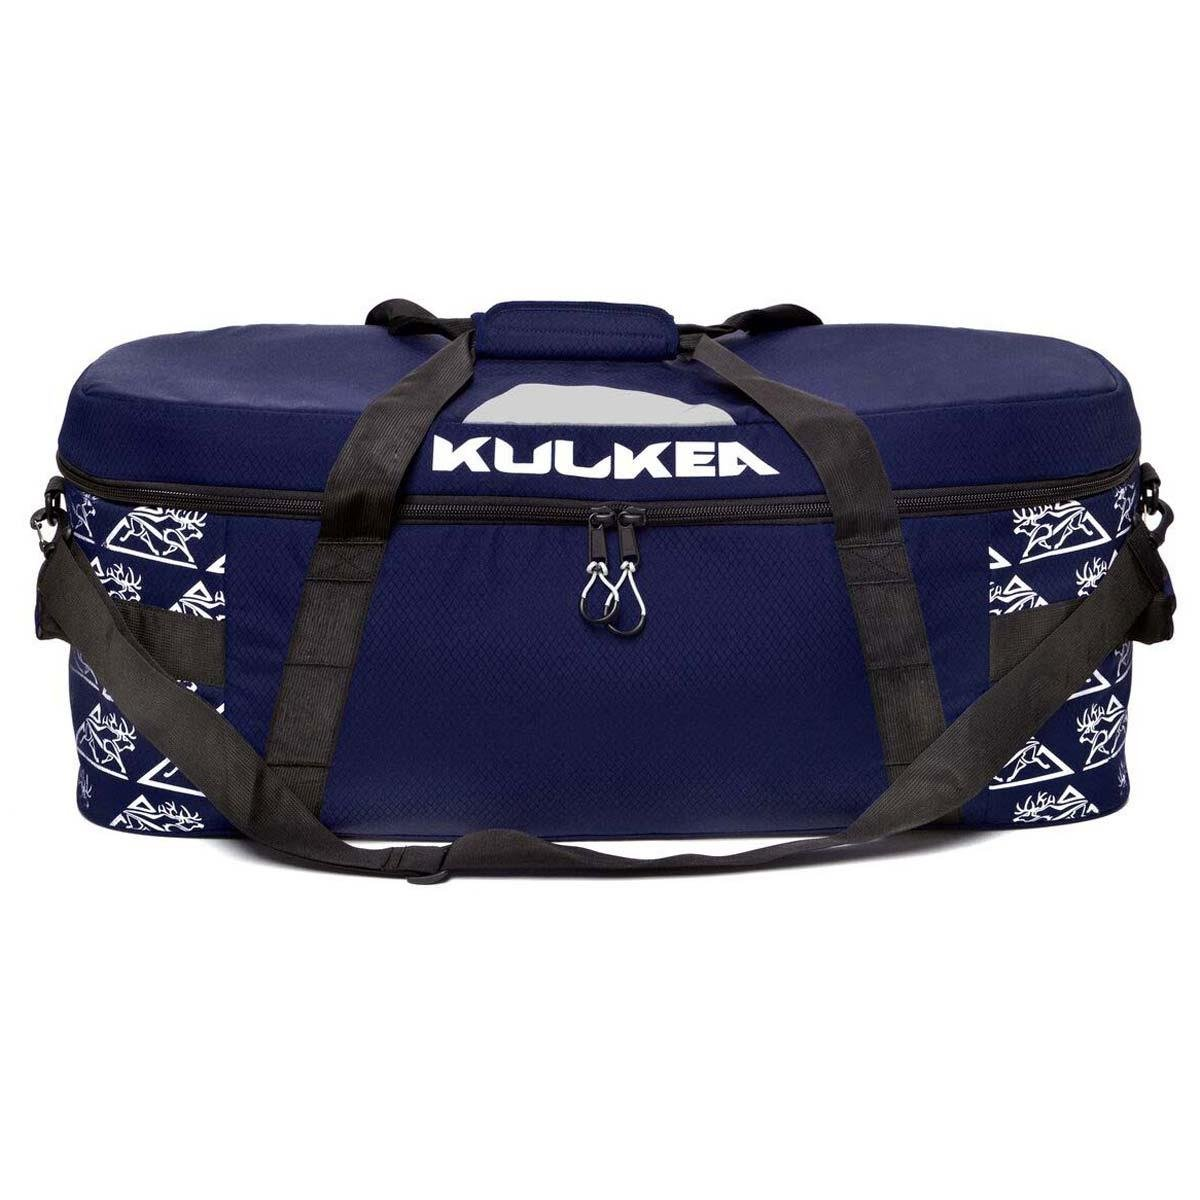 KULKEA Tandem Ski Boot Bag - Smoke Blue/White/Black by